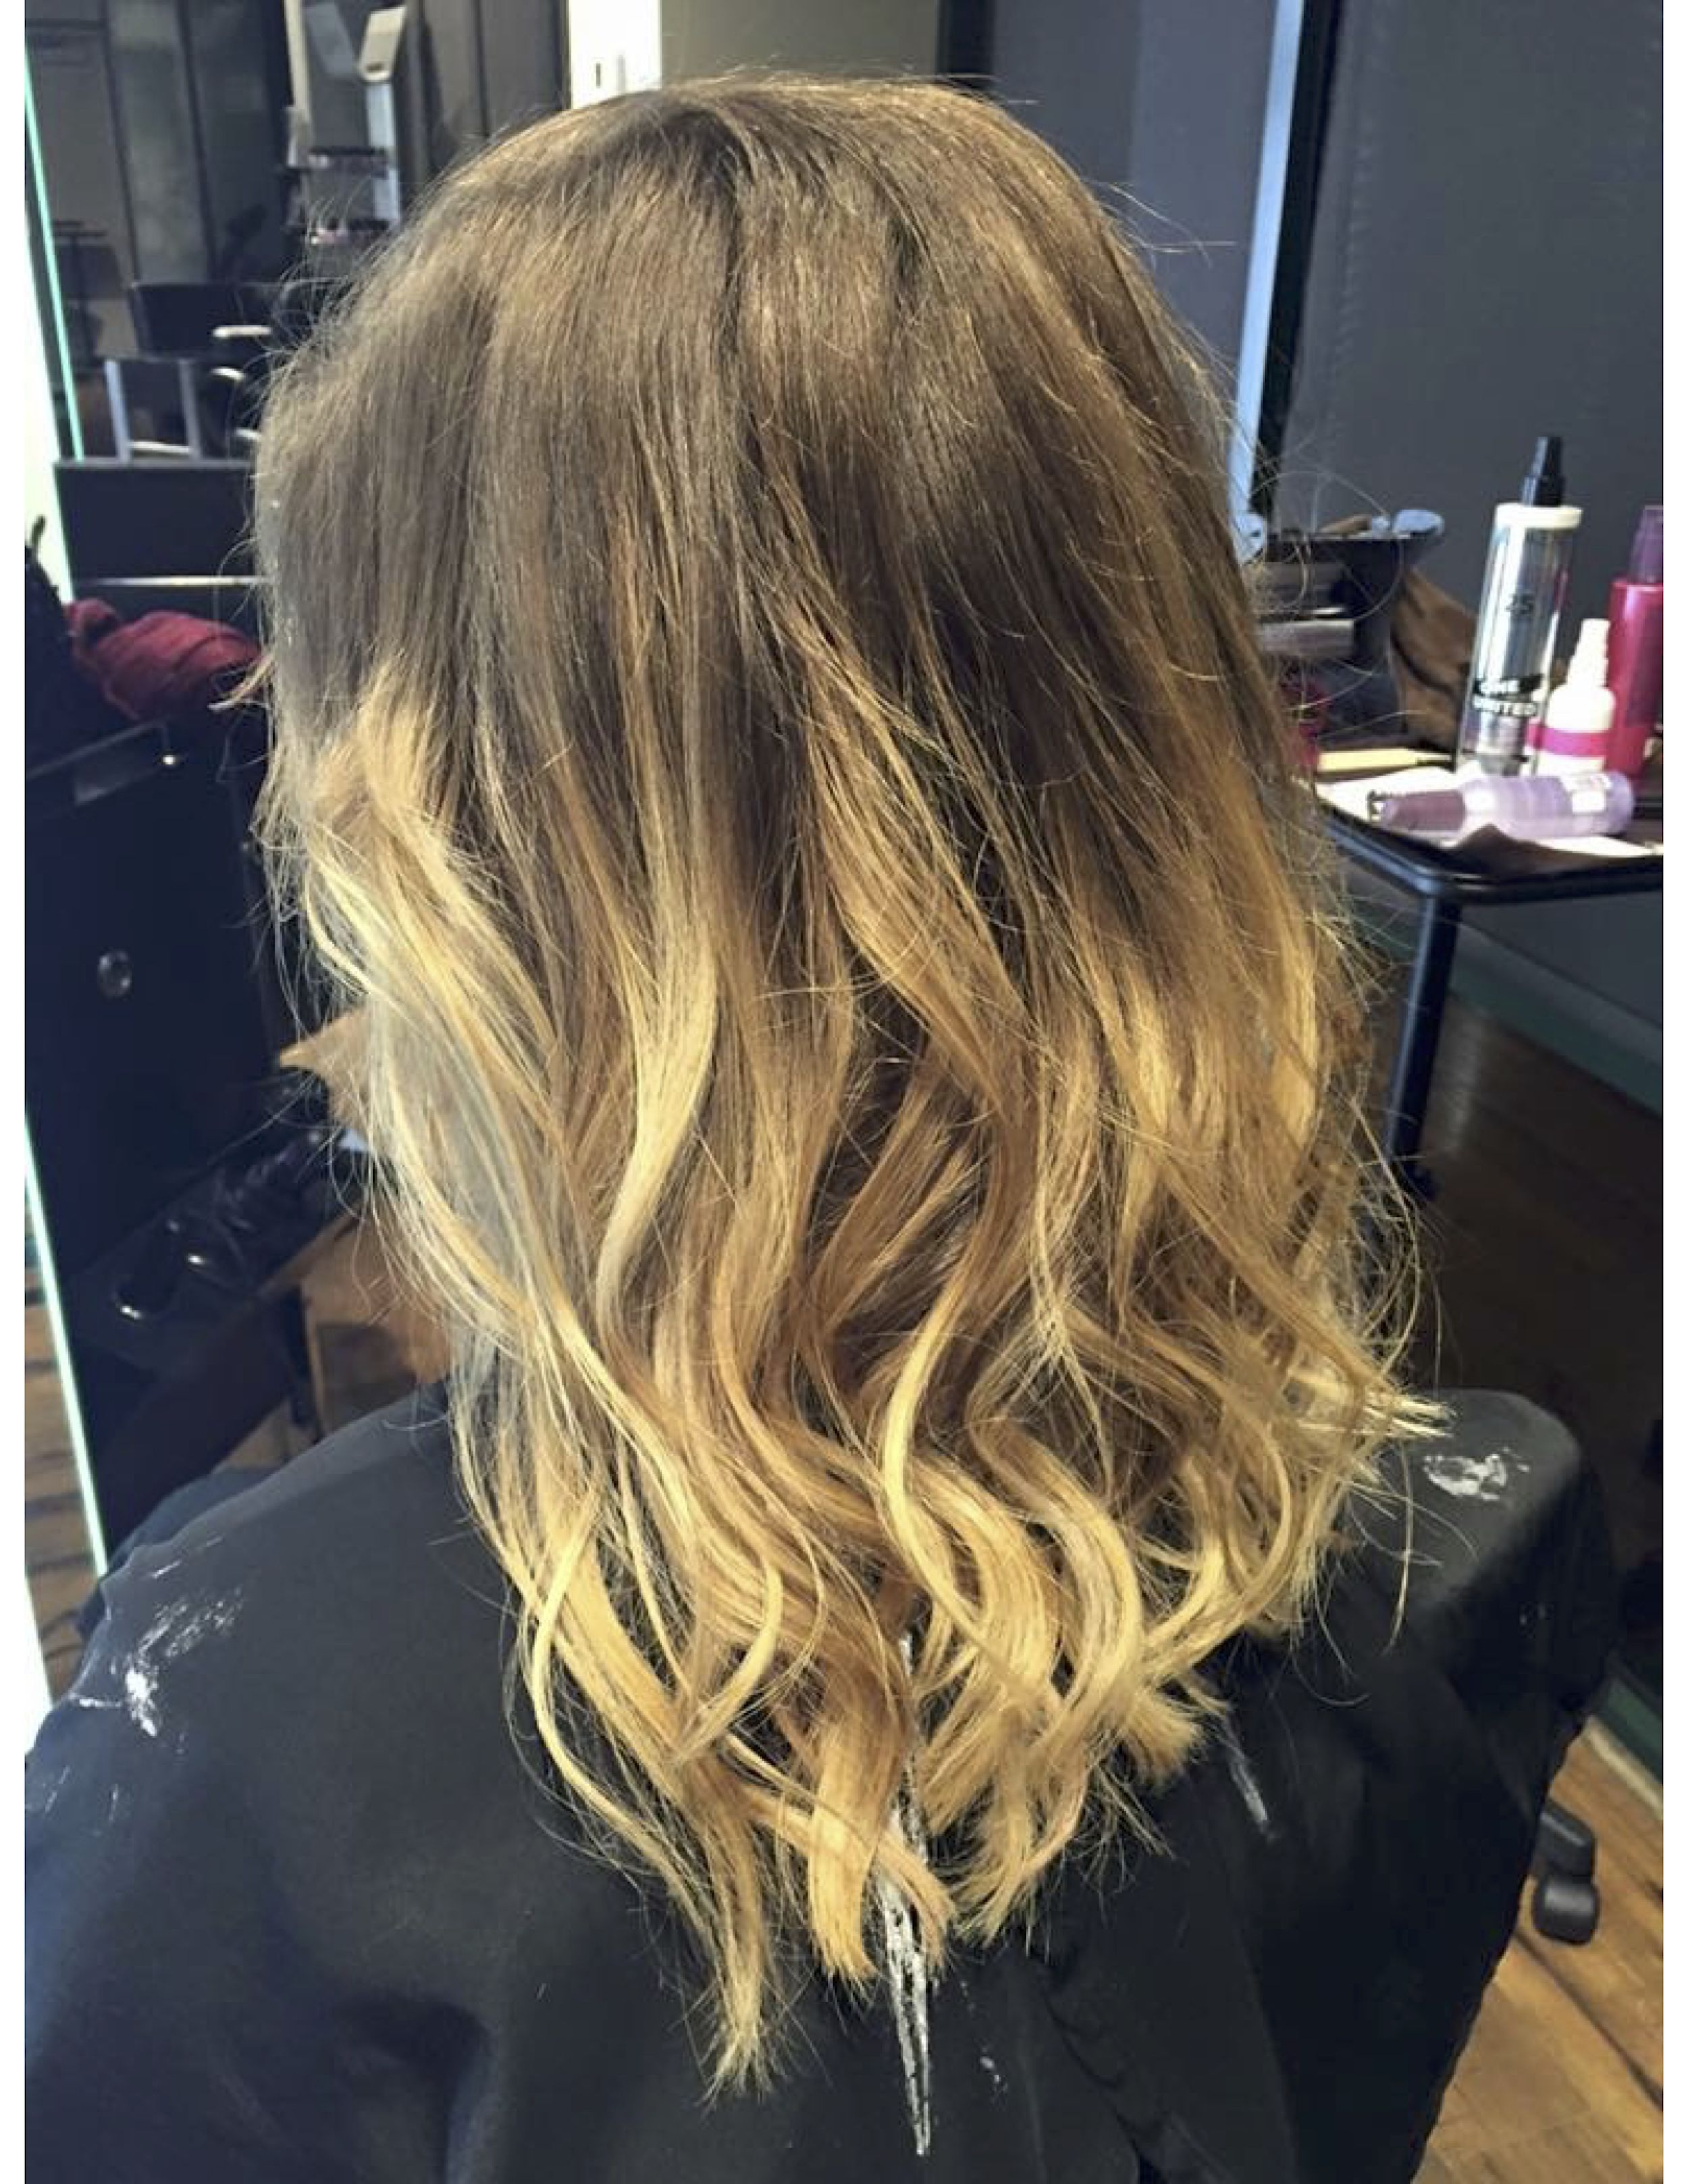 Pin On Hair Color Cuts By Bliss Hair Studio